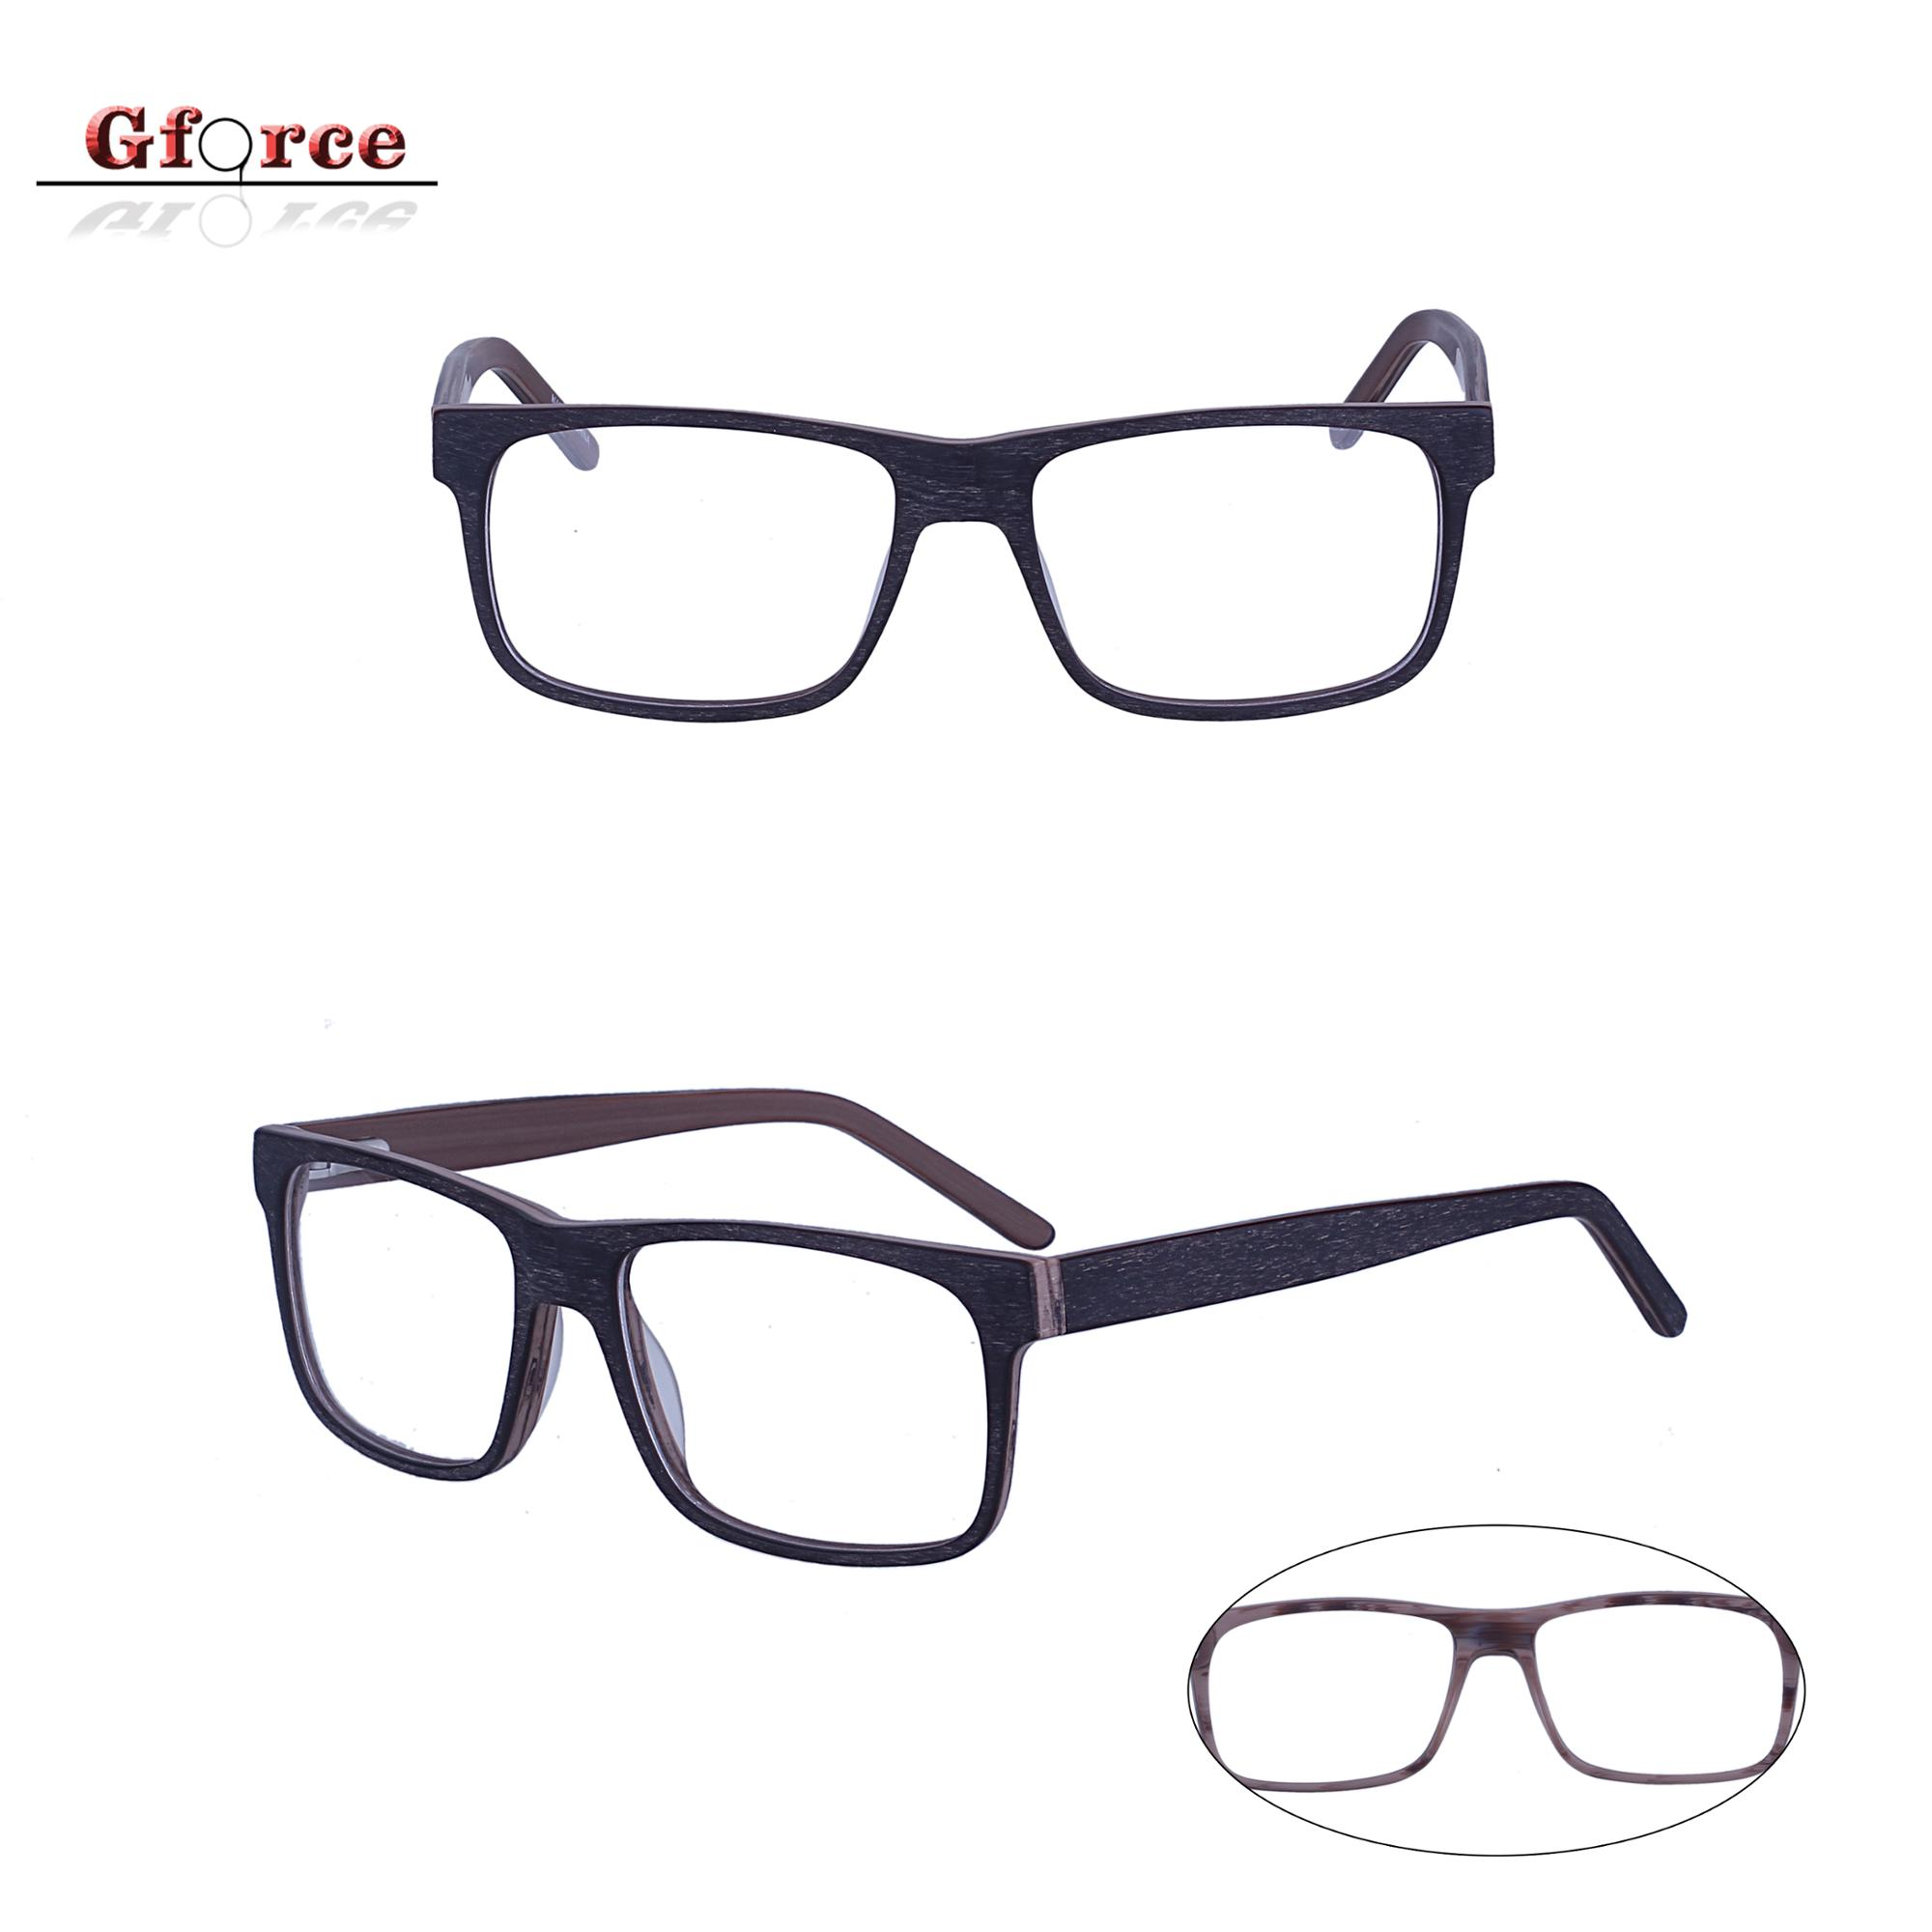 7e61559fa6c latest model spectacle fashion acetate optical eyeglasses frames for men in  stock